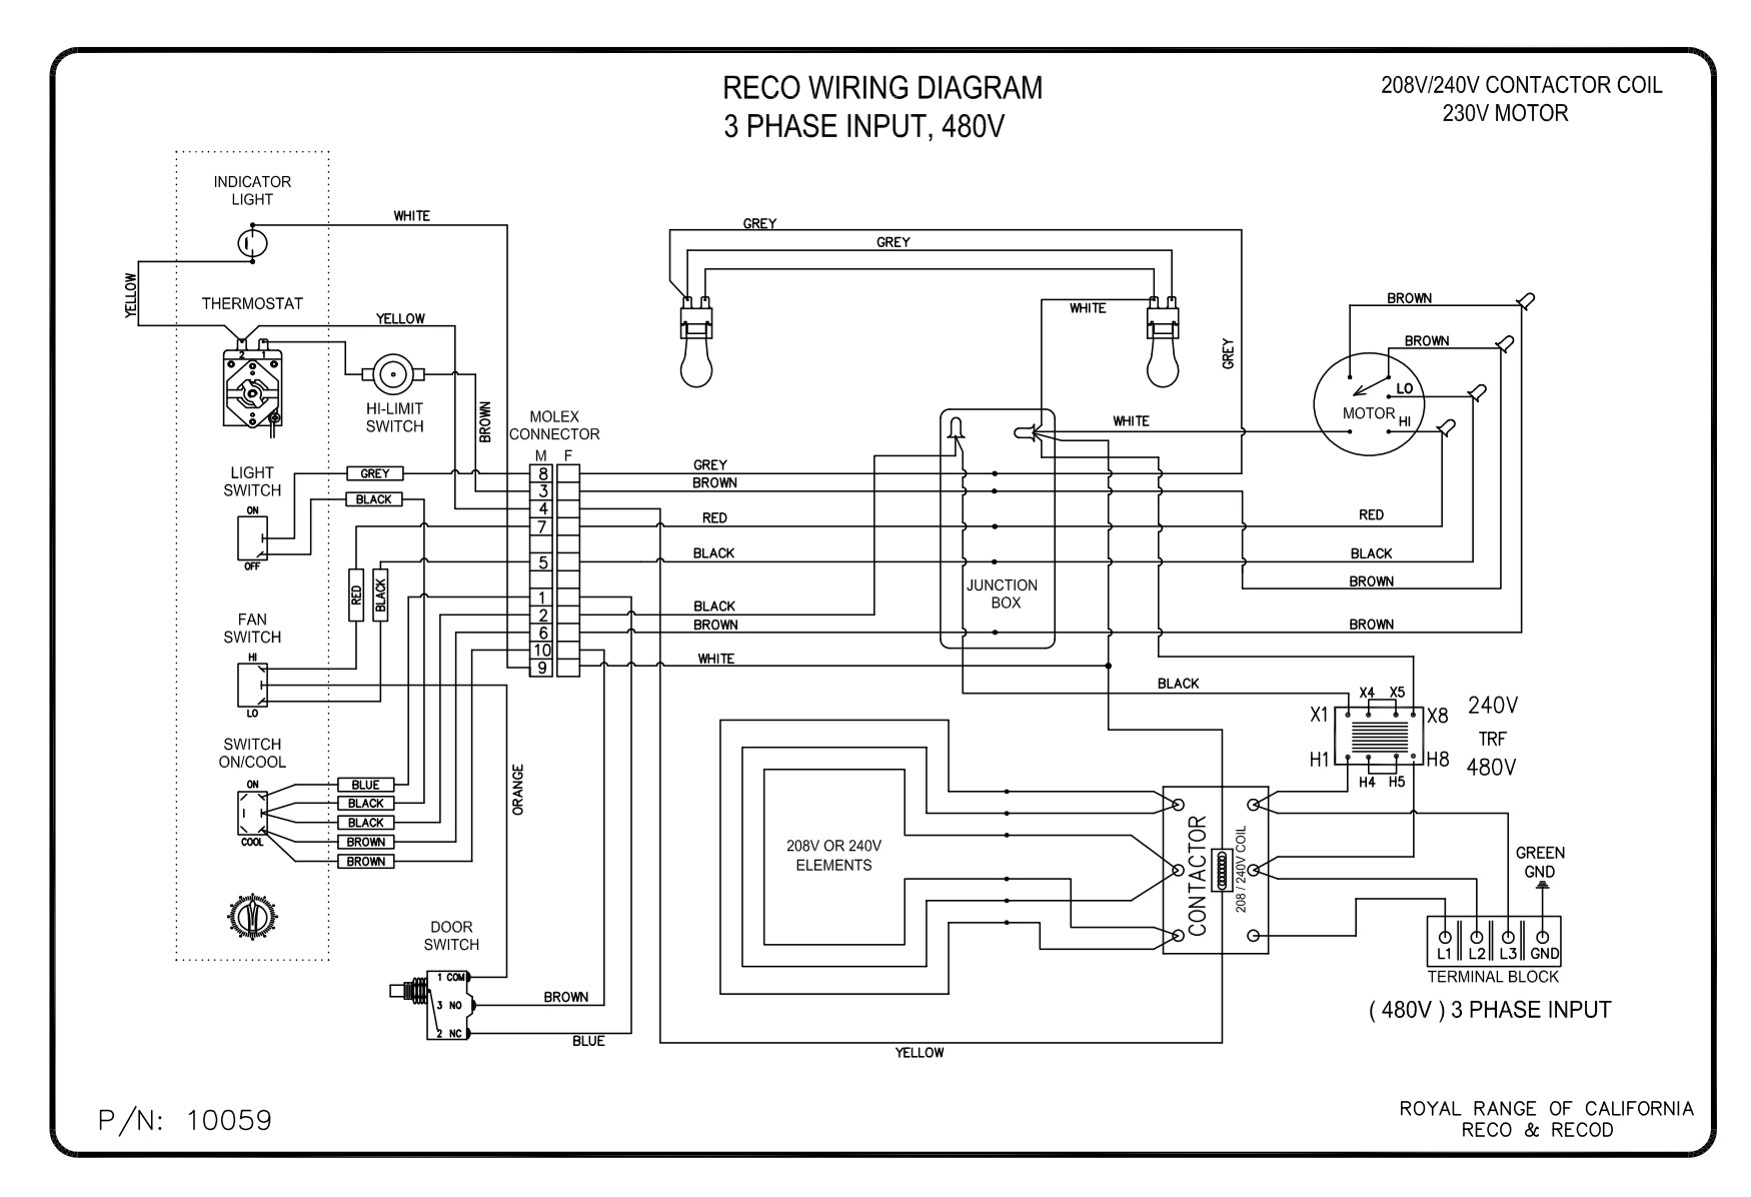 royal chef oven wiring diagram find wiring diagram u2022 rh empcom co Whirlpool Oven Wiring Diagram maytag electric oven wiring diagram